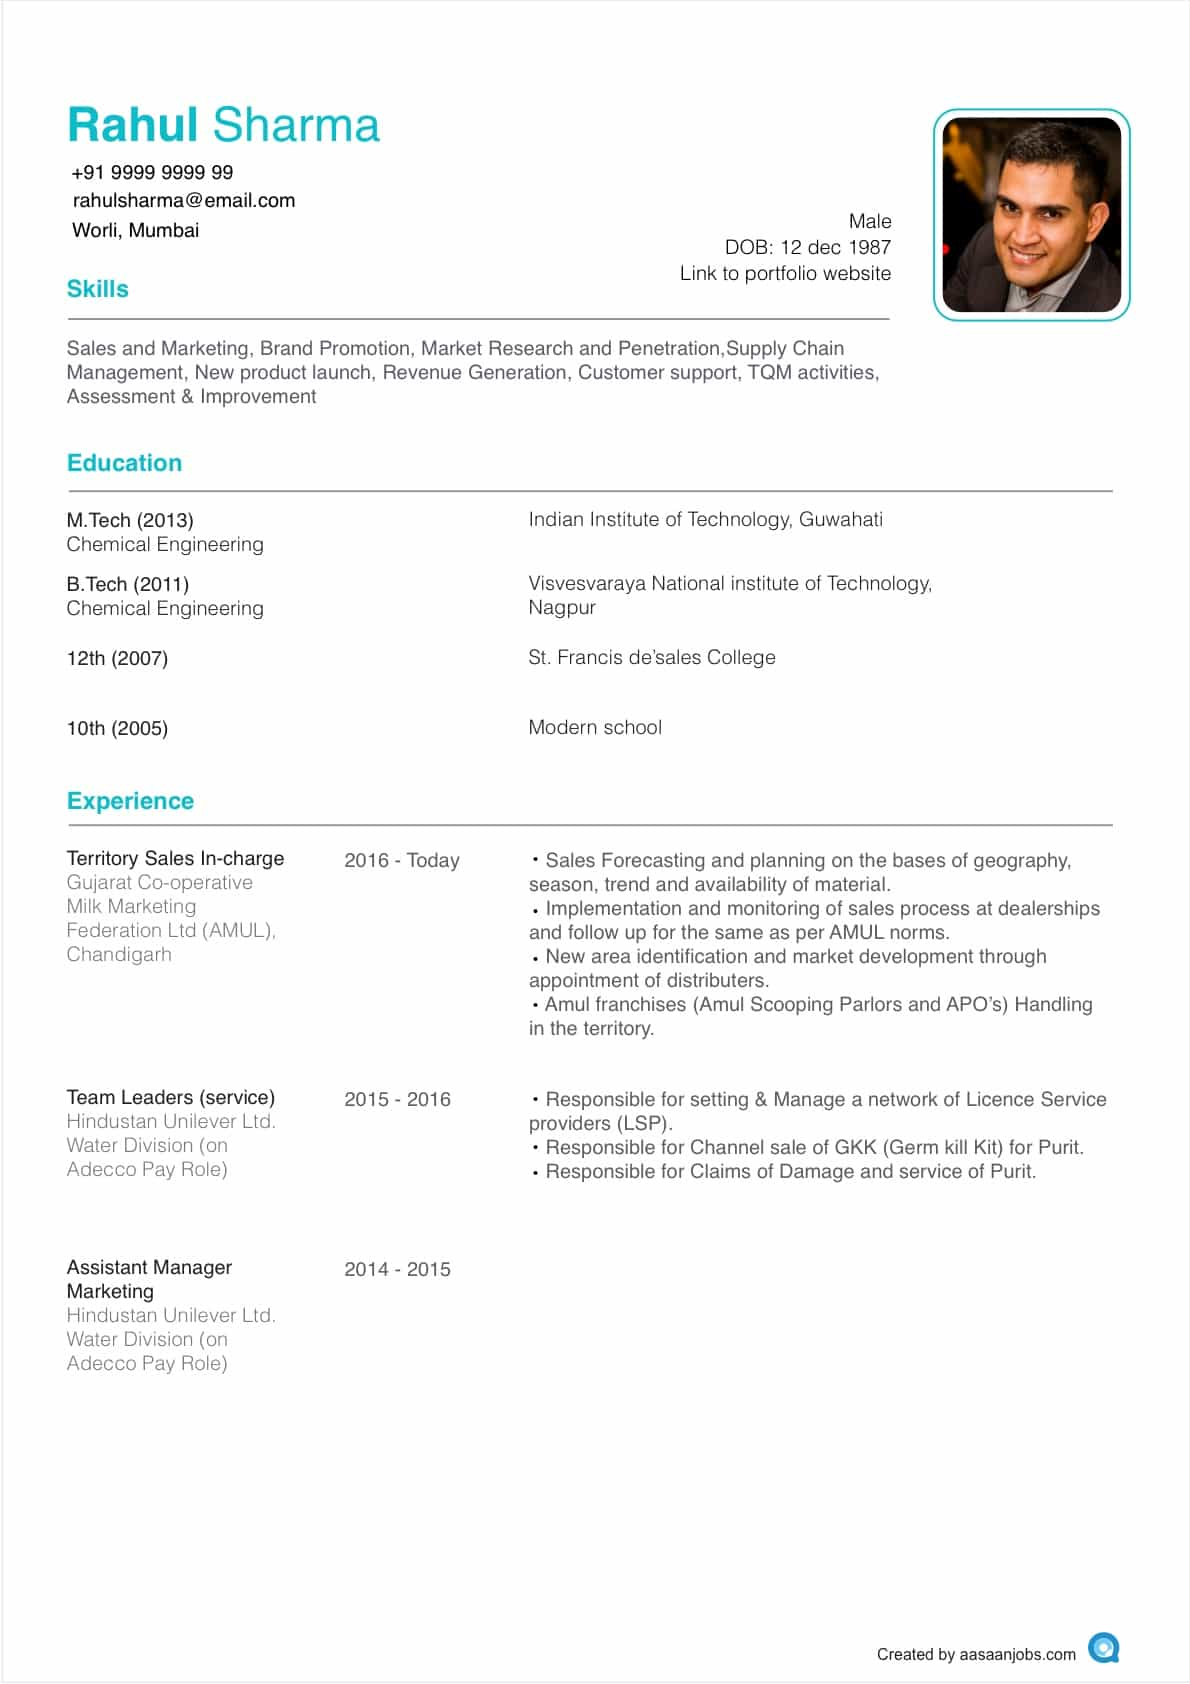 template 5 2714a8a37b 2 8 - Format Of Resume